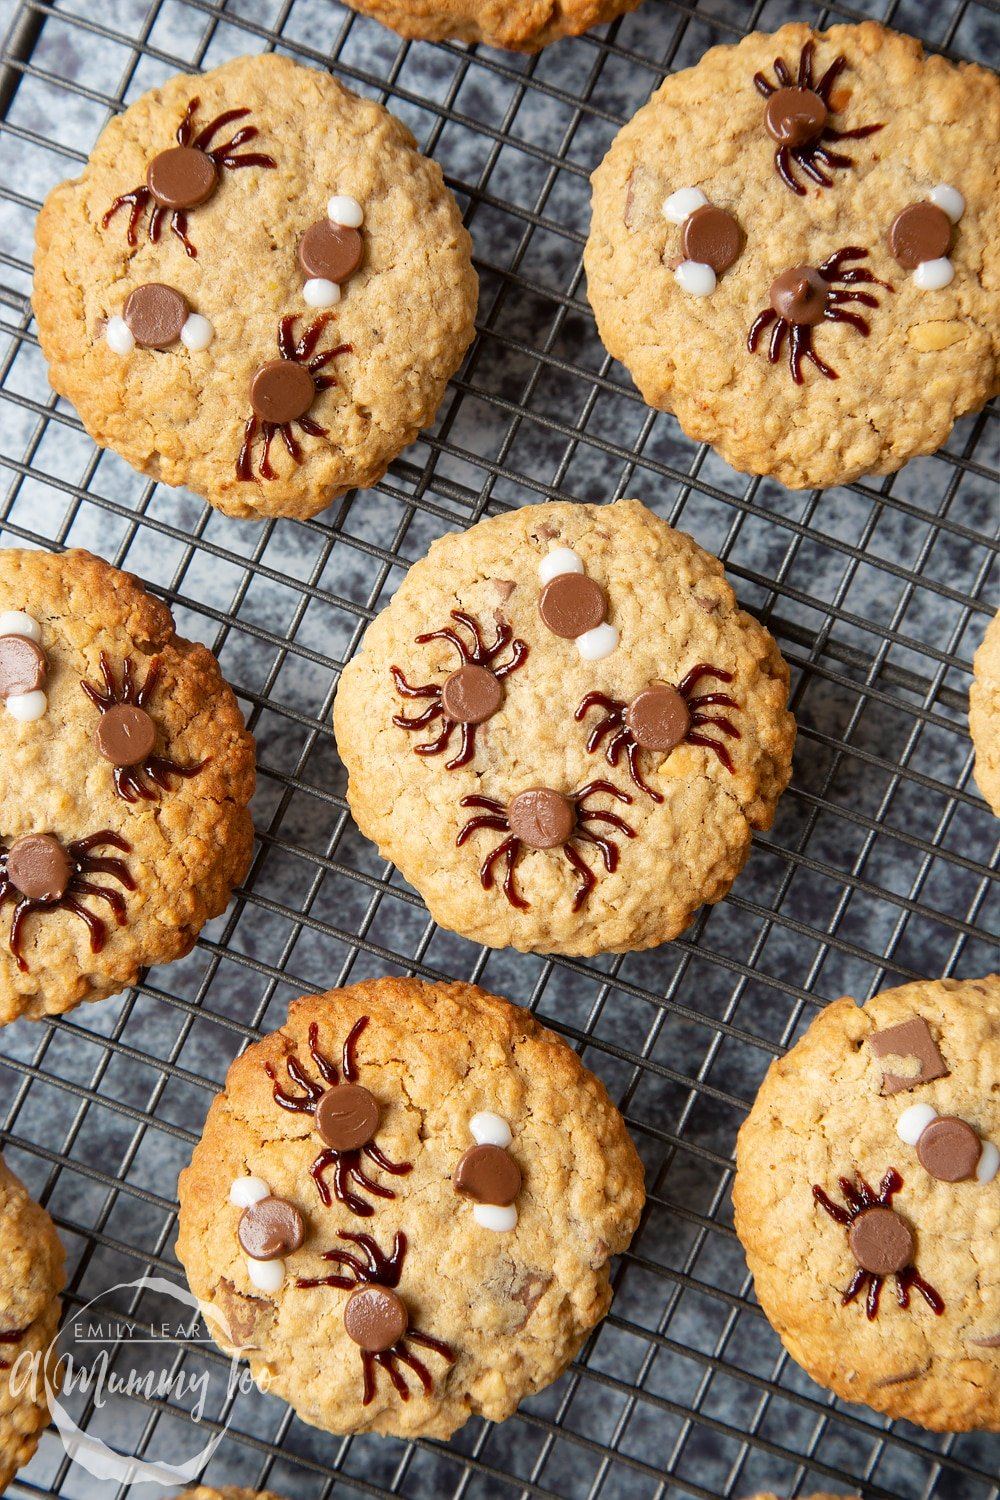 Full decorated Halloween peanut butter spider cookies on a wire rack.